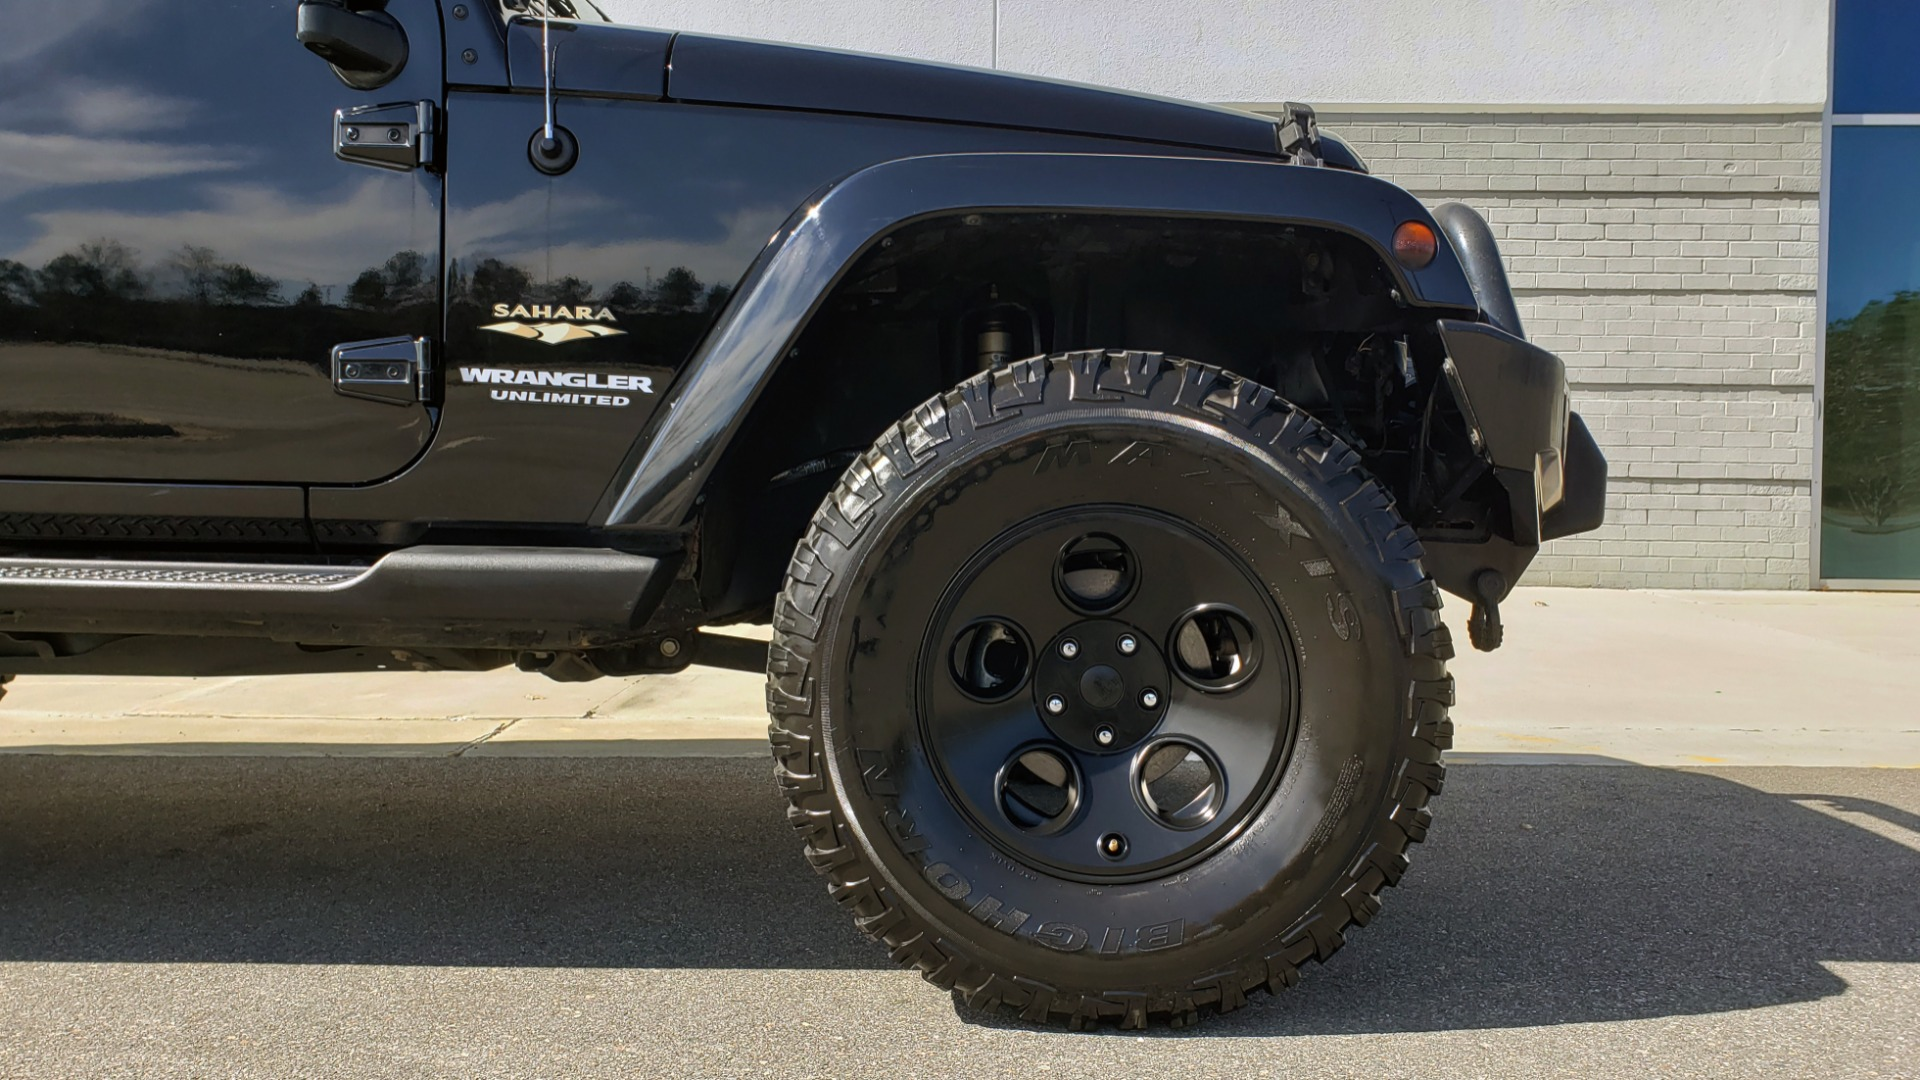 Used 2014 Jeep WRANGLER UNLIMITED SAHARA 4X4 / 3.6L V6 / 5-SPD AUTO / NAV / TOW PKG / SOFT-TOP for sale $24,795 at Formula Imports in Charlotte NC 28227 82